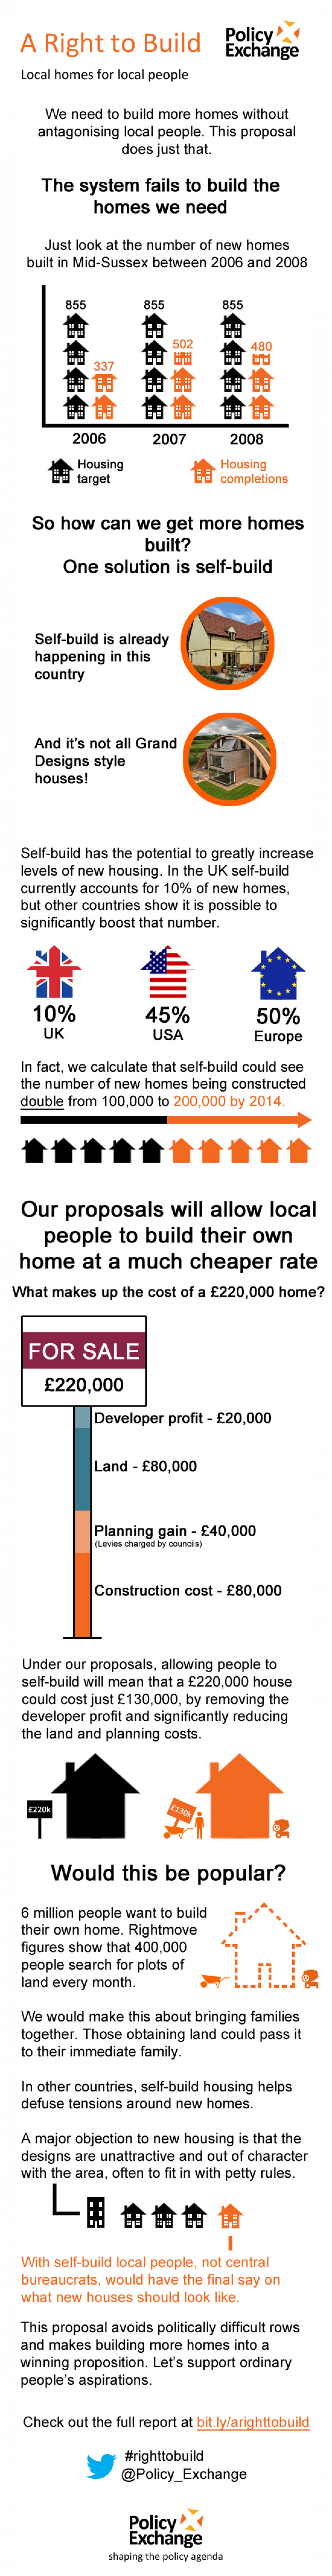 A Right to Build: Local homes for local people Infographic